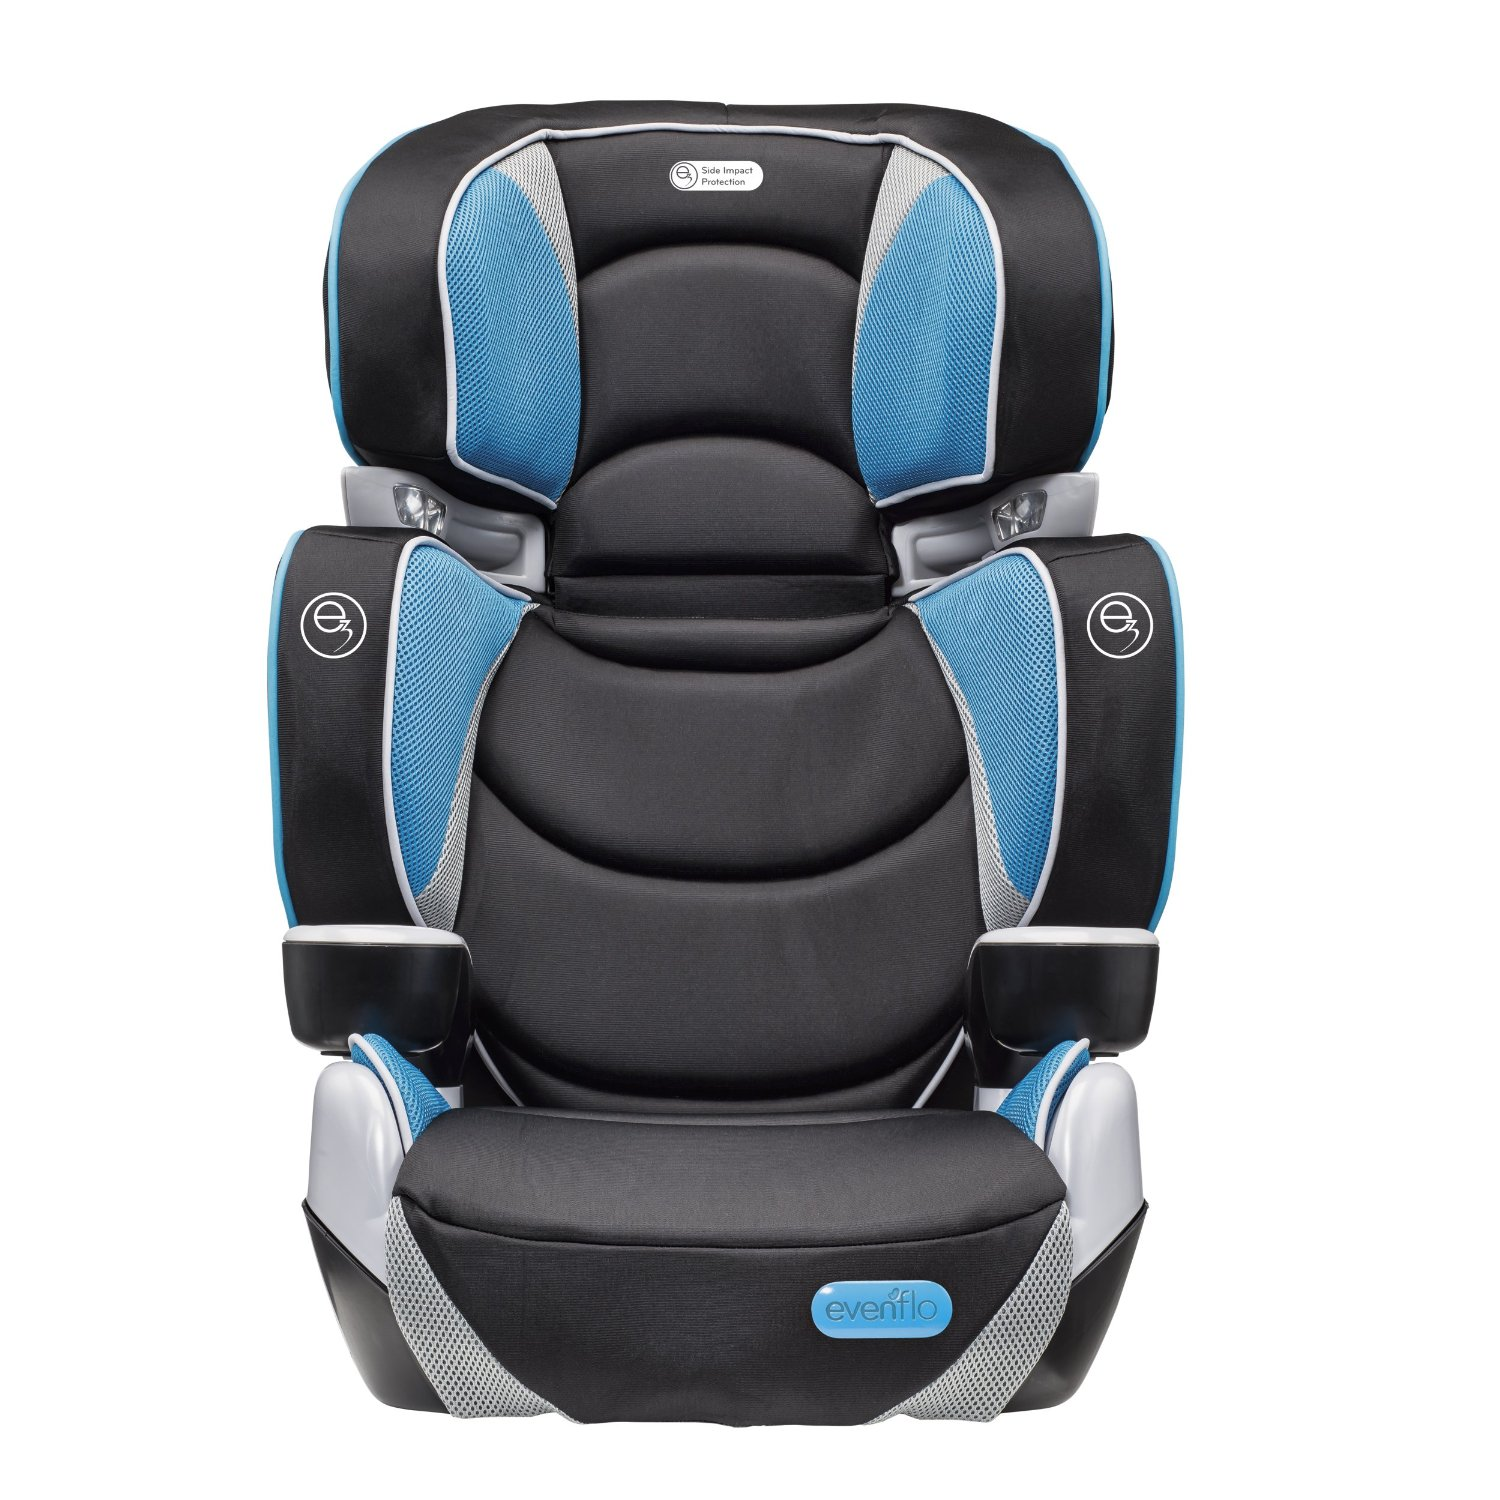 evenflo rightfit booster seat vs graco affix youth booster. Black Bedroom Furniture Sets. Home Design Ideas